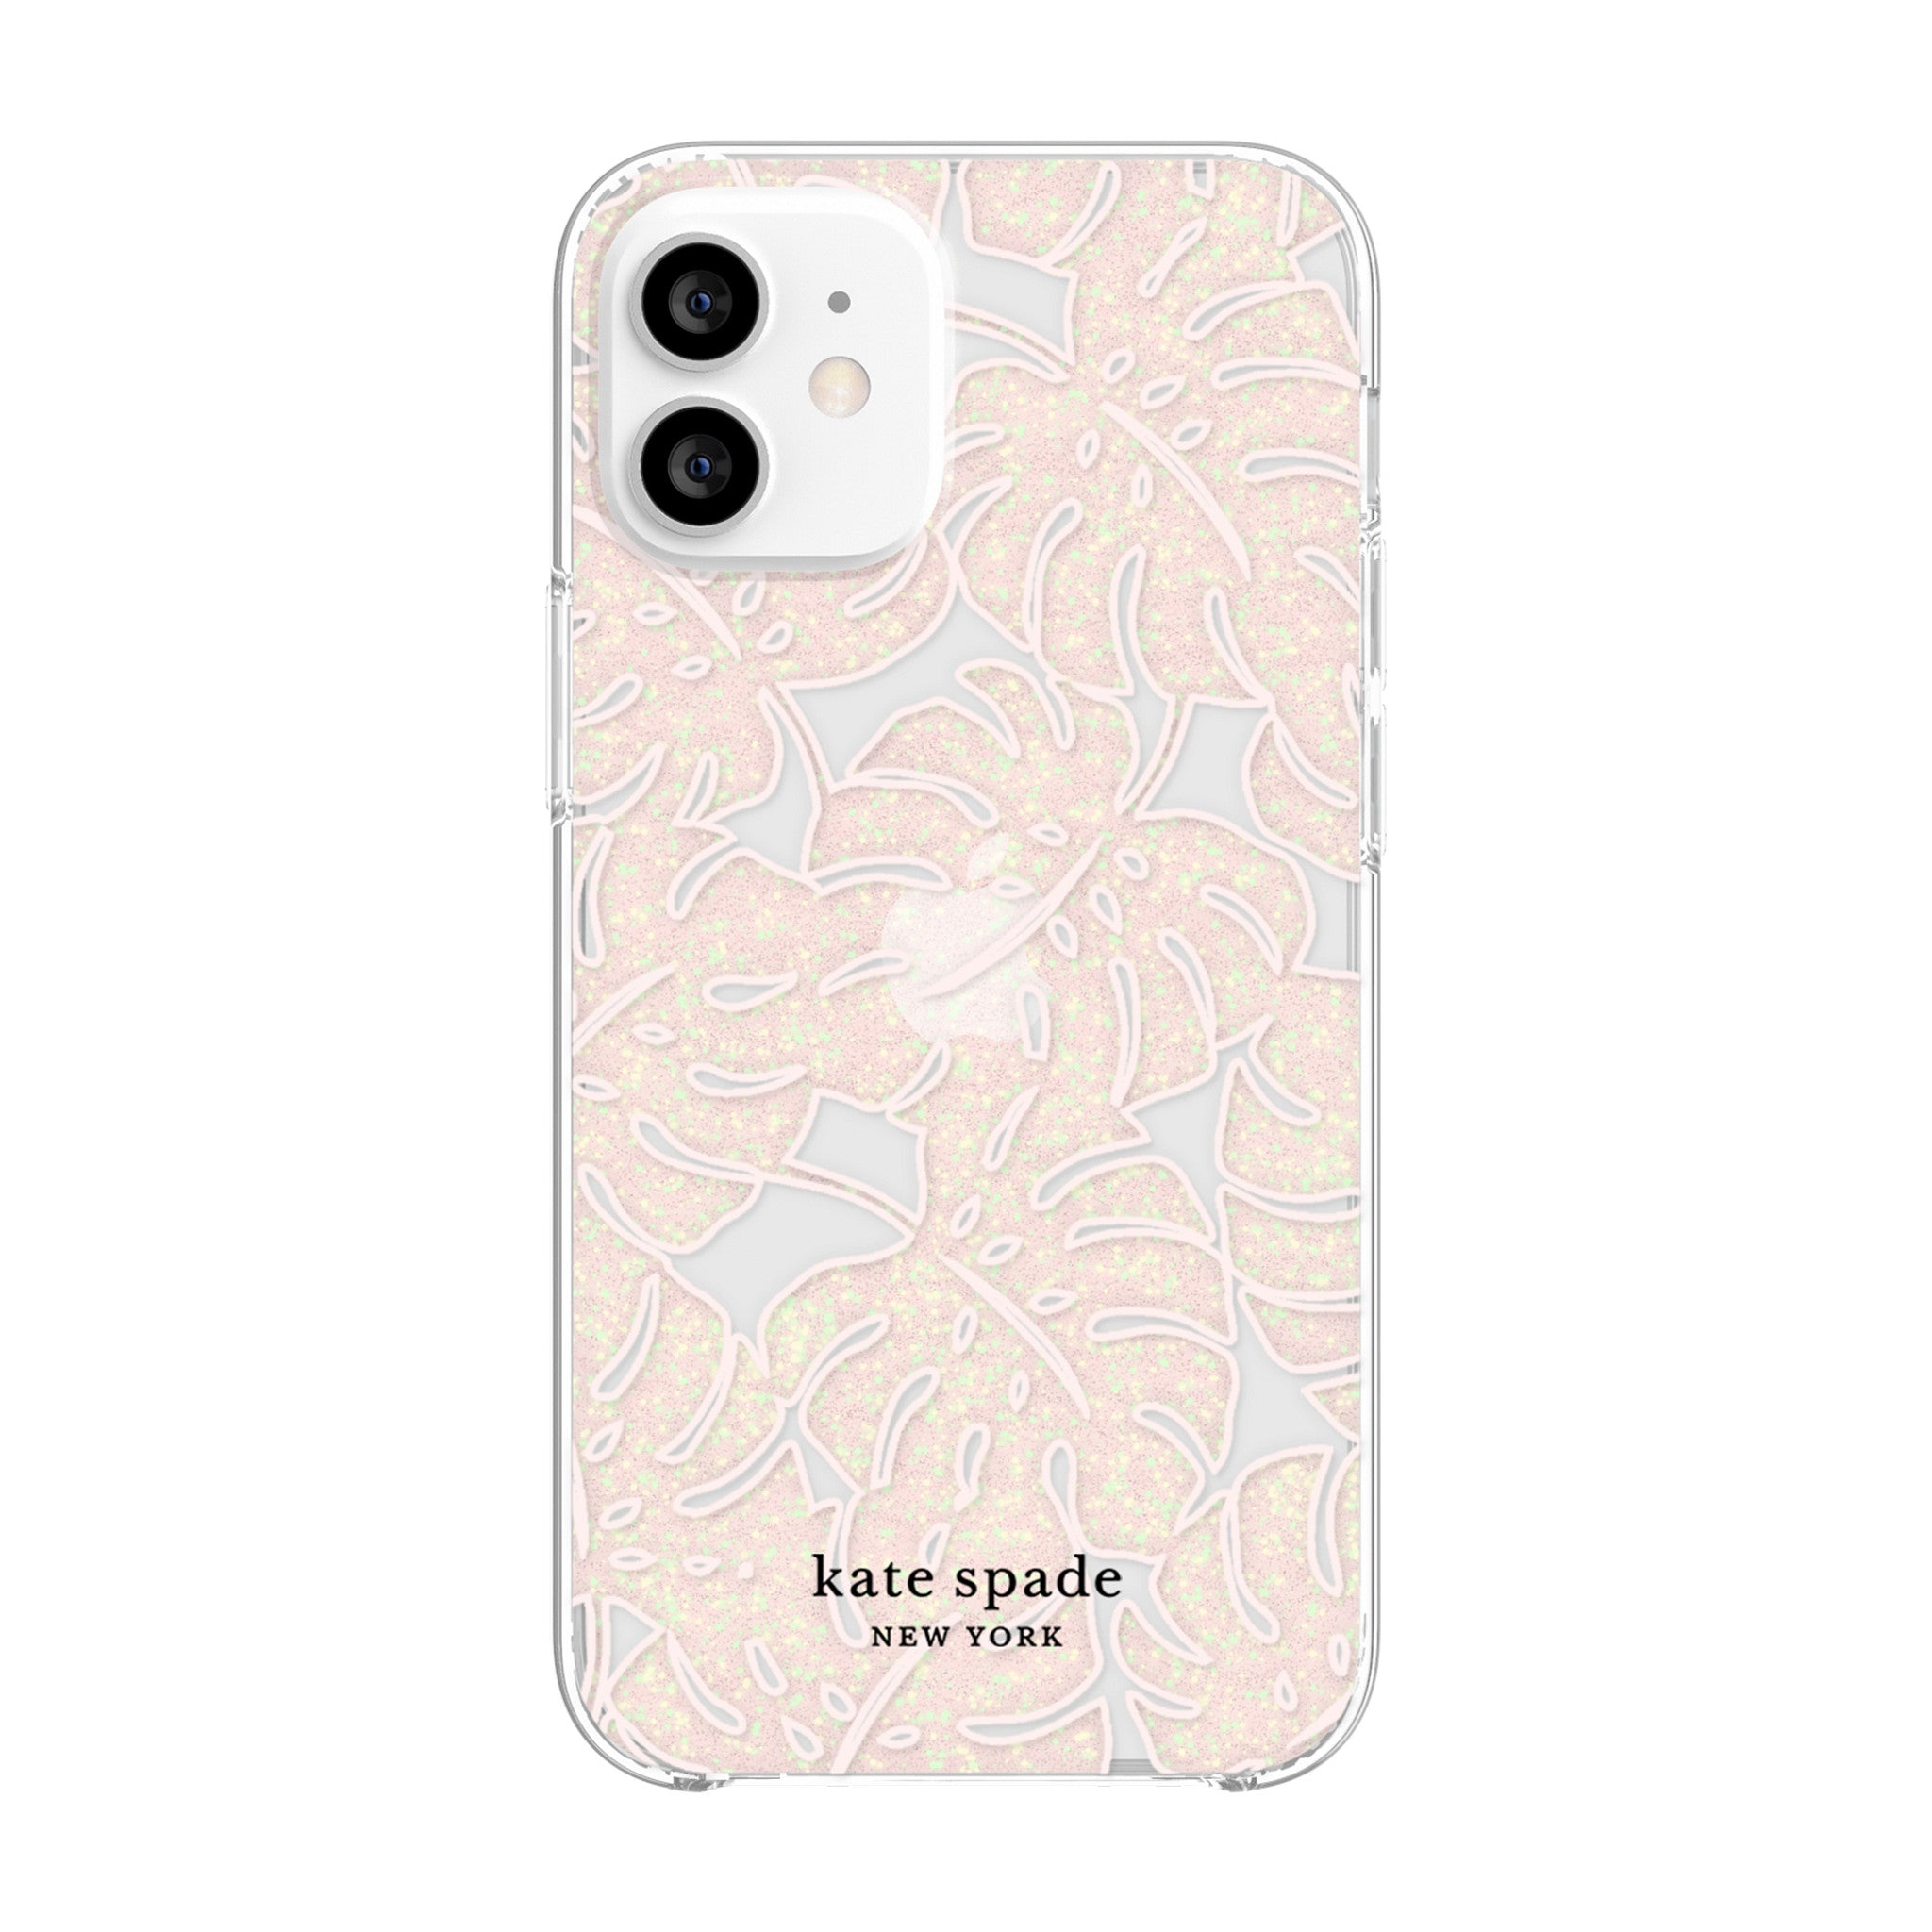 kate spade new york - Protective Hardshell Case for iPhone 12 mini - Island Leaf Pink Glitter/Clear/Blush Bumper